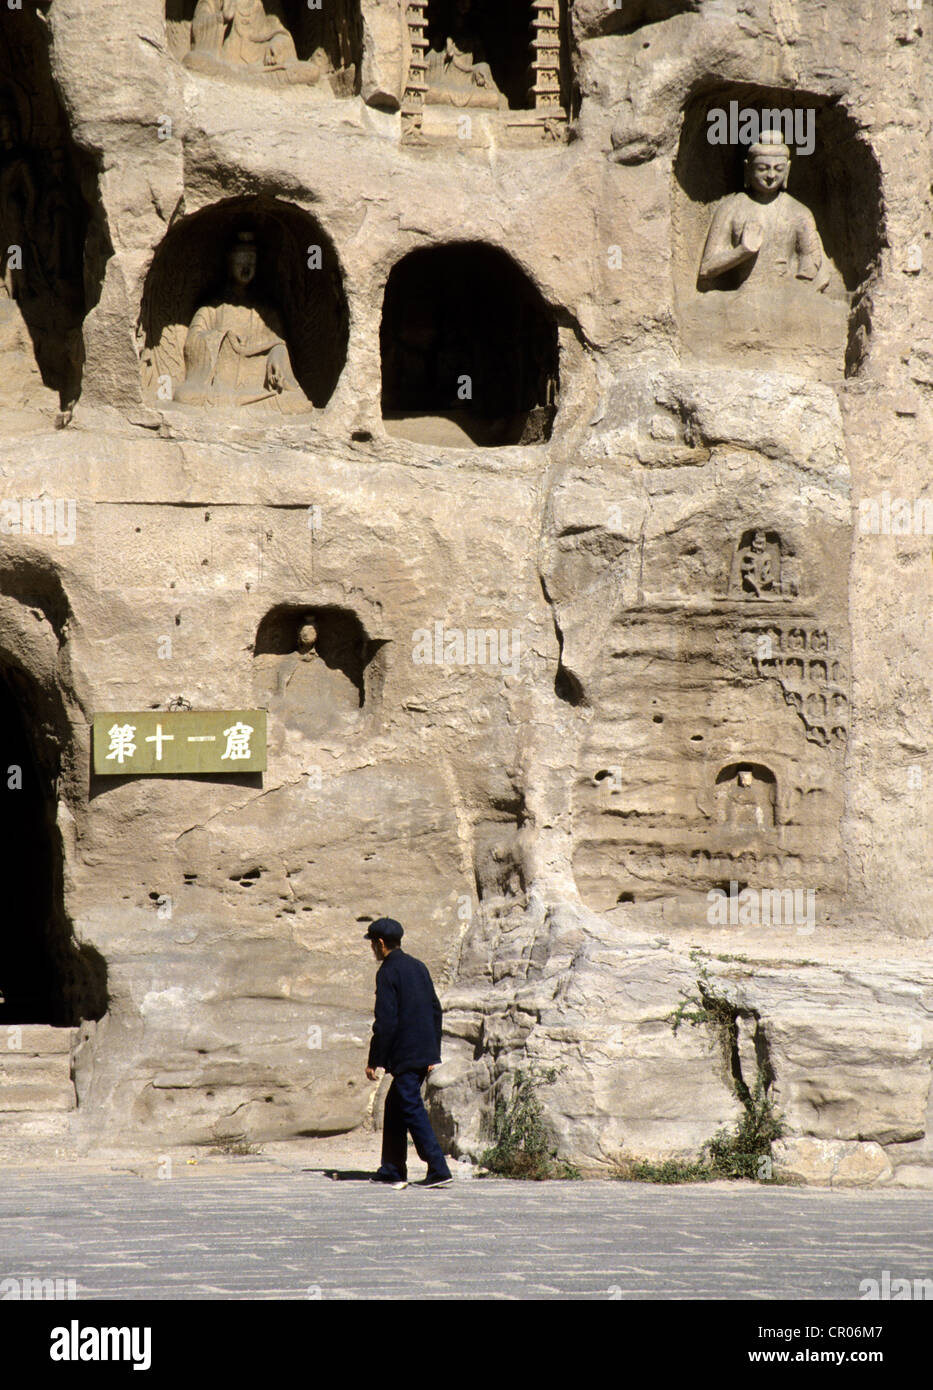 China, Shanxi Province, Datong, the Yungang Grottoes, listed as World Heritage of UNESCO - Stock Image